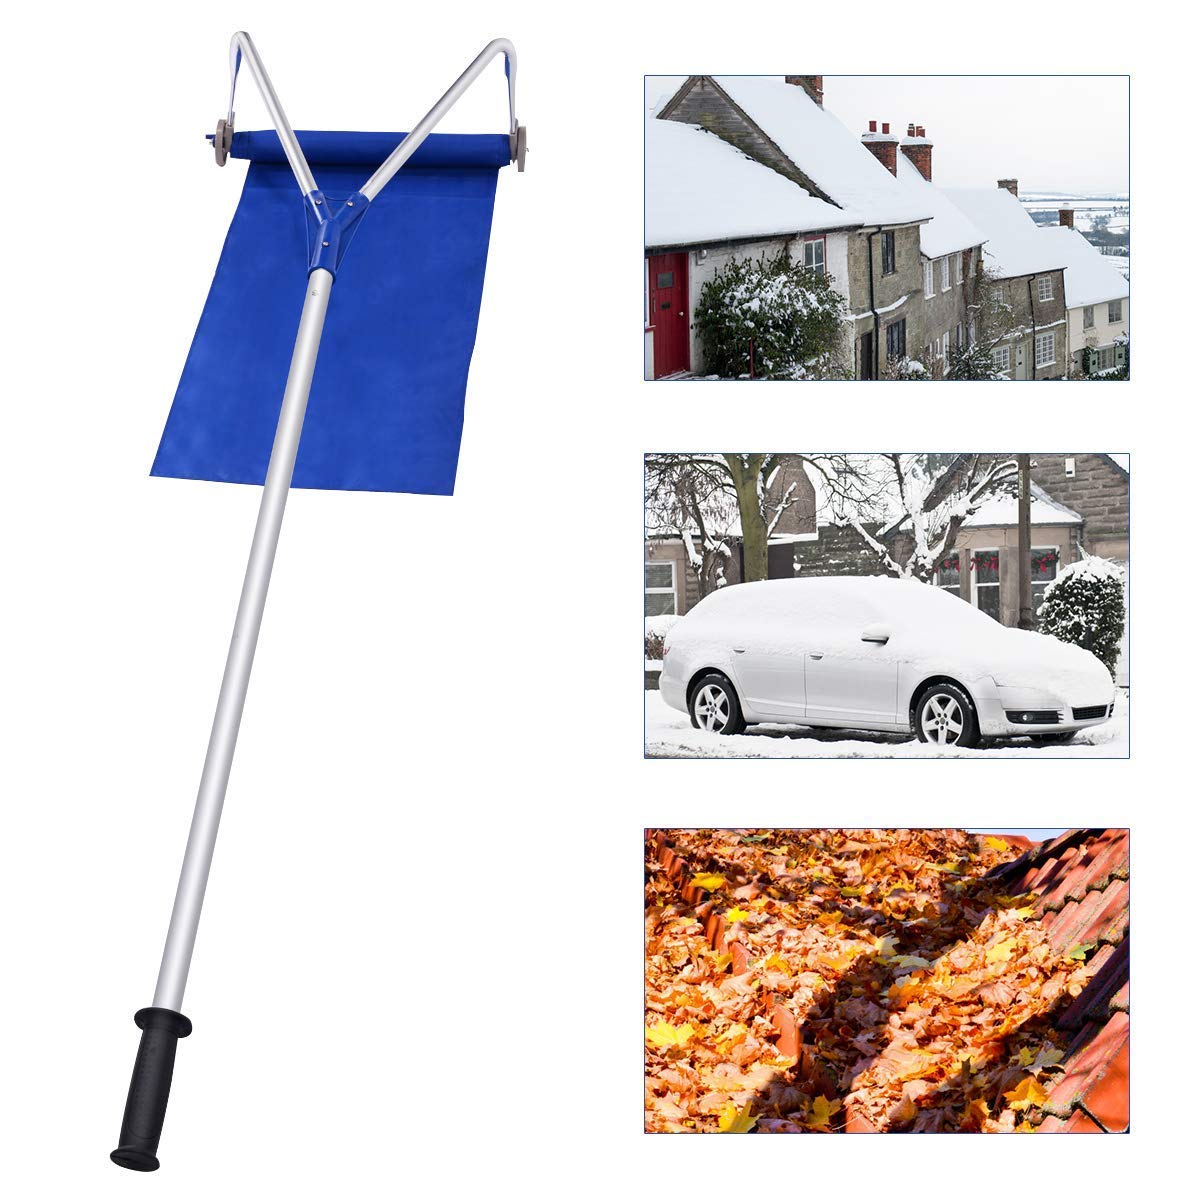 Cacoffay Adjustable Telescoping Snow Roof Rake Snow Rake Removal Tool with Lightweight Handle Poly Slide and Fiberglass Pole Construction for Relieve Your House of The Heavy Snow Relieves by Cacoffay